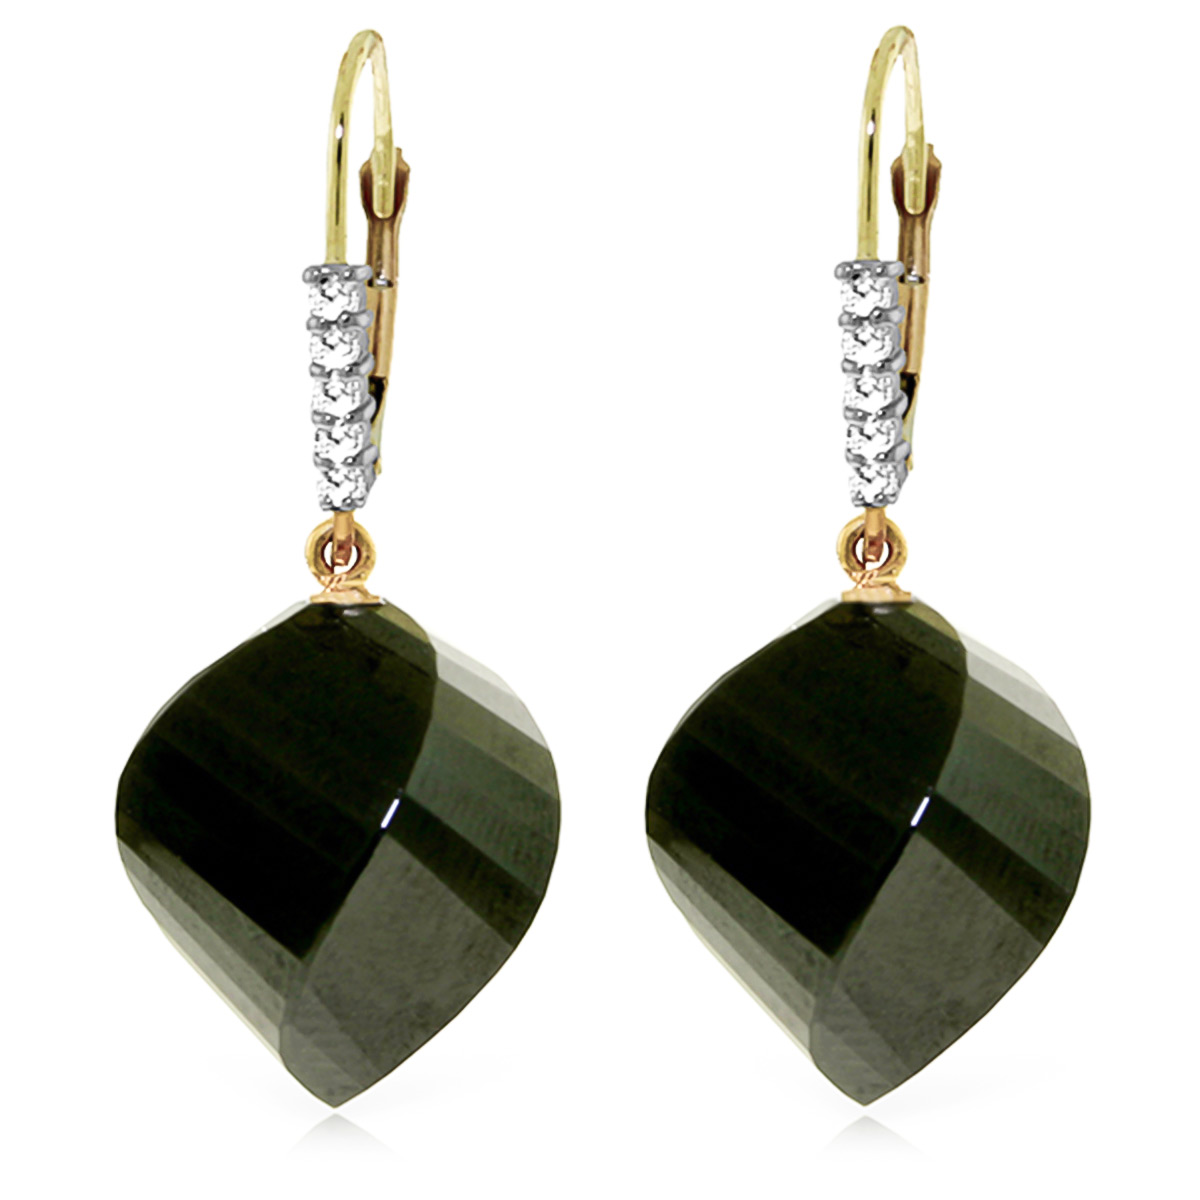 Black Spinel and Diamond Drop Earrings 31.0ctw in 9ct Gold